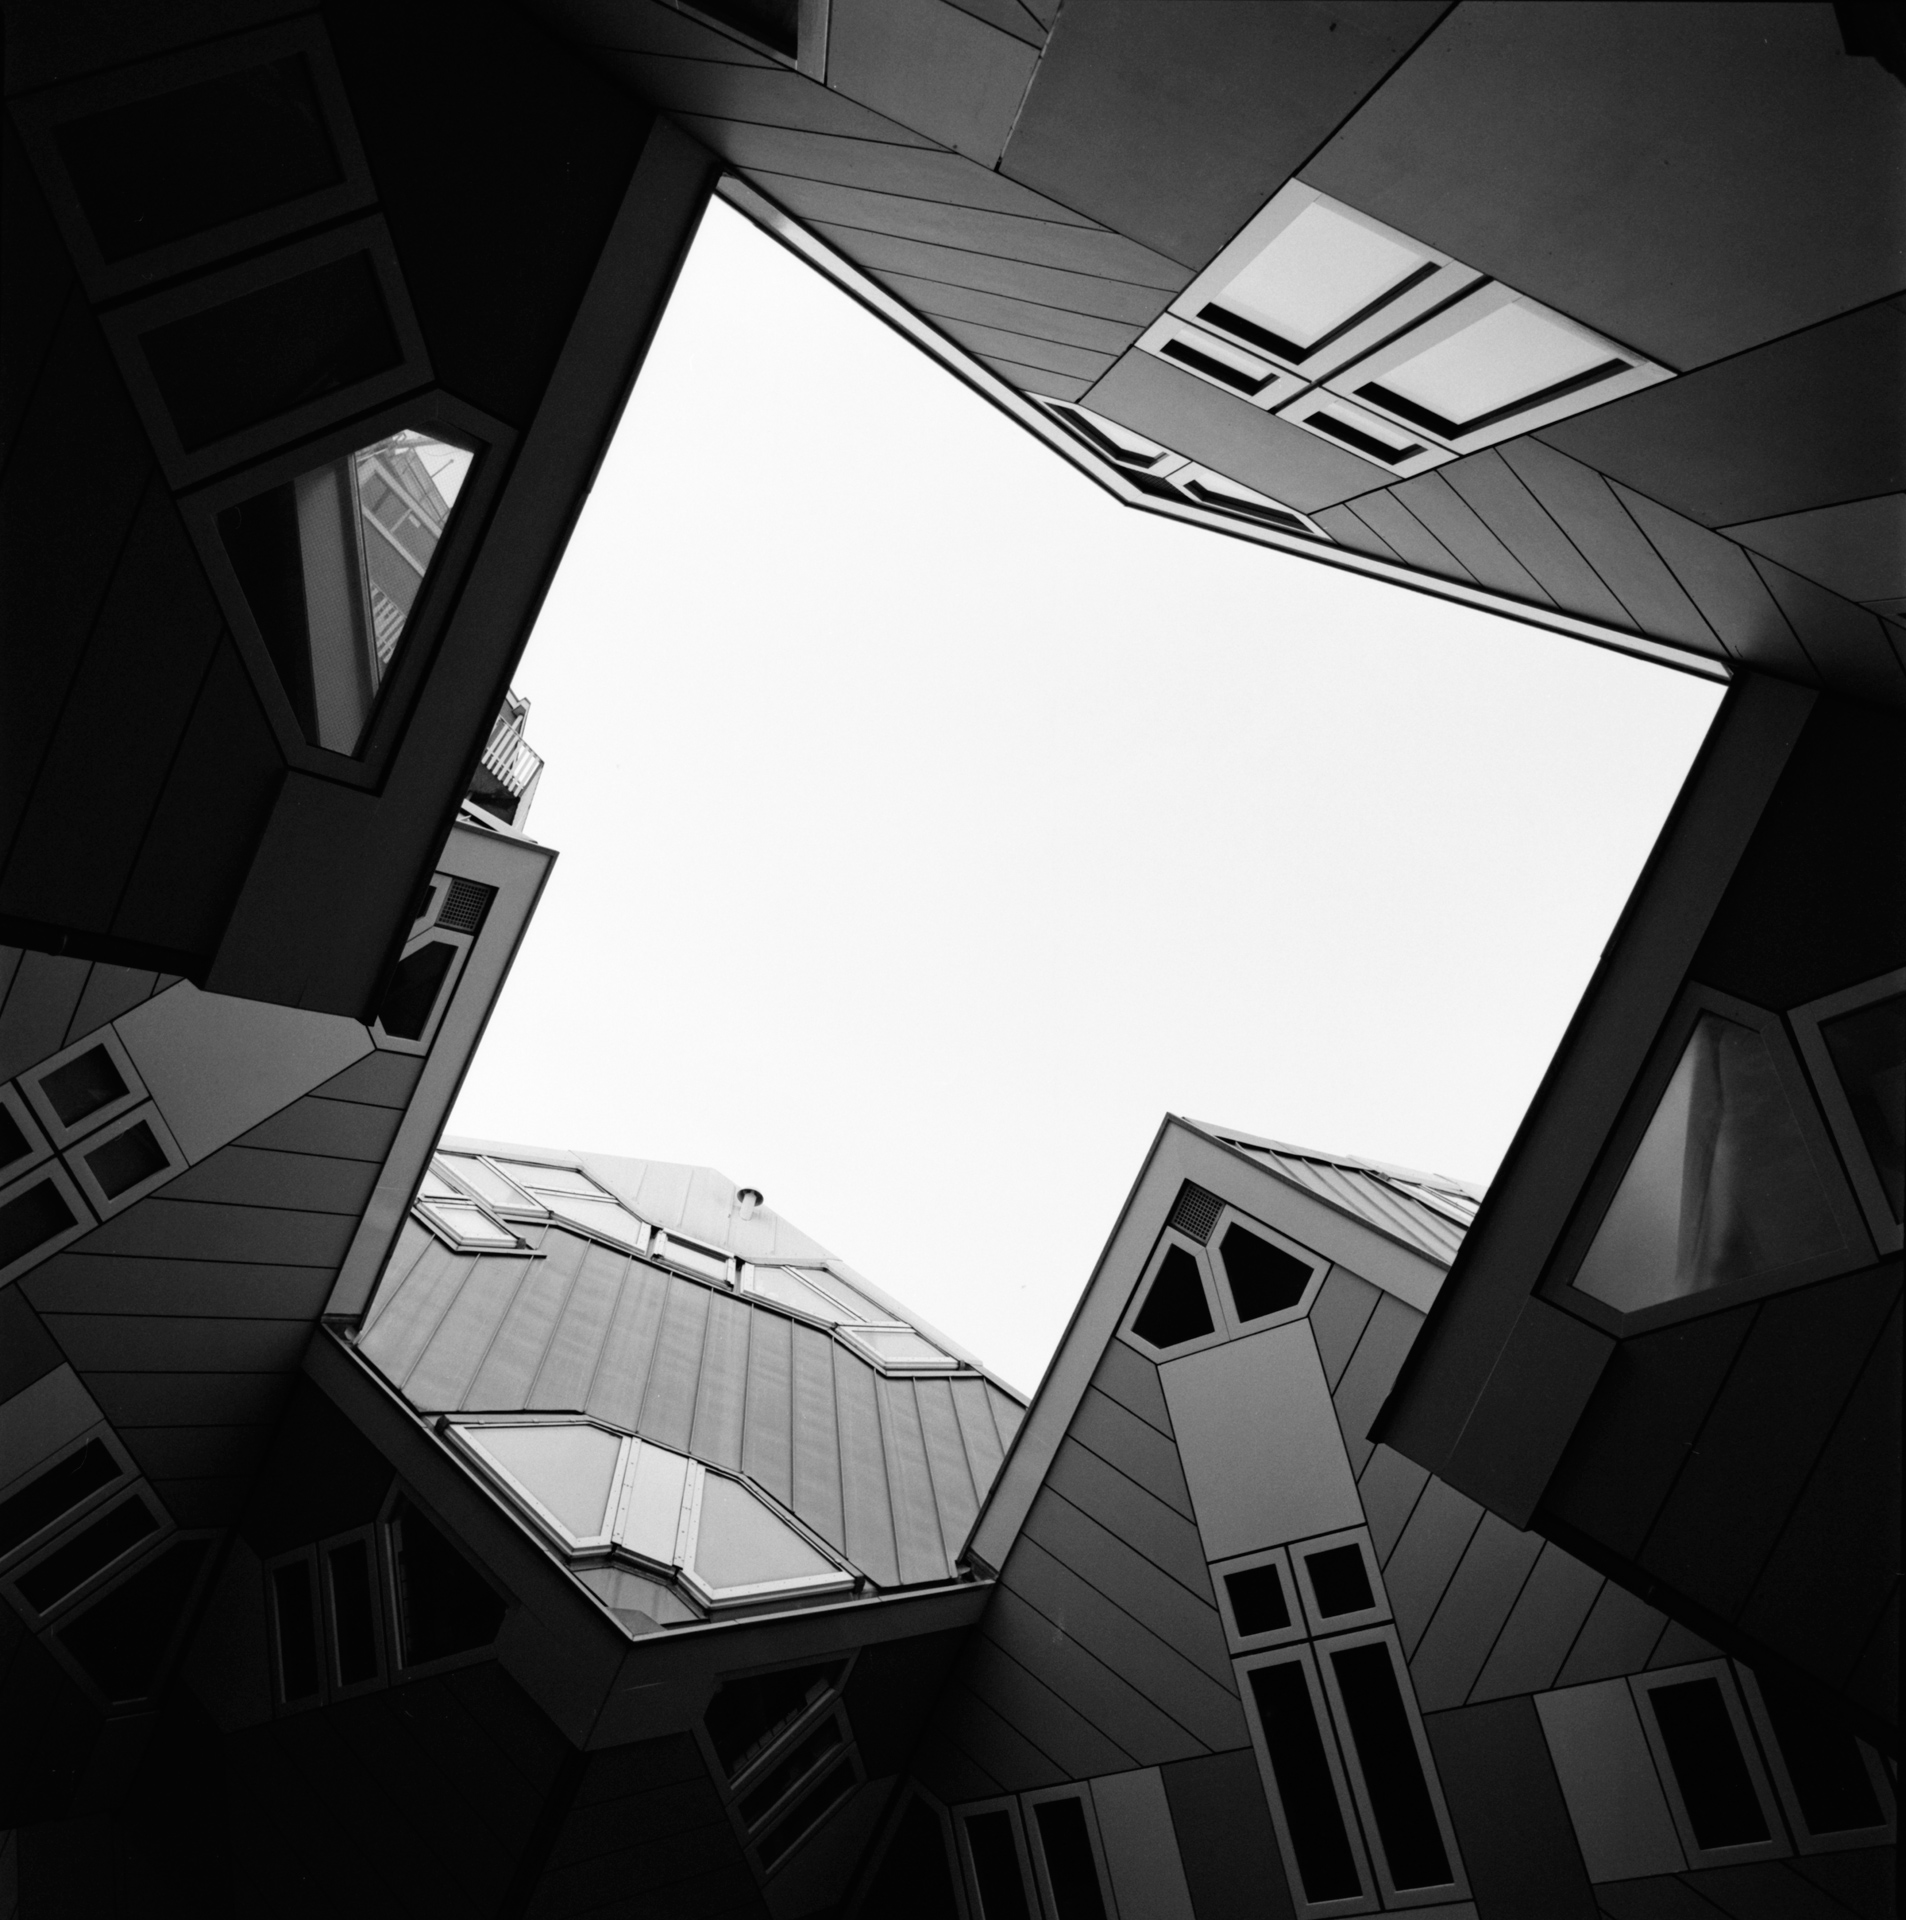 photography by David Hatters in Rotterdam, Geometries of the sky, film shot with Hasselblad